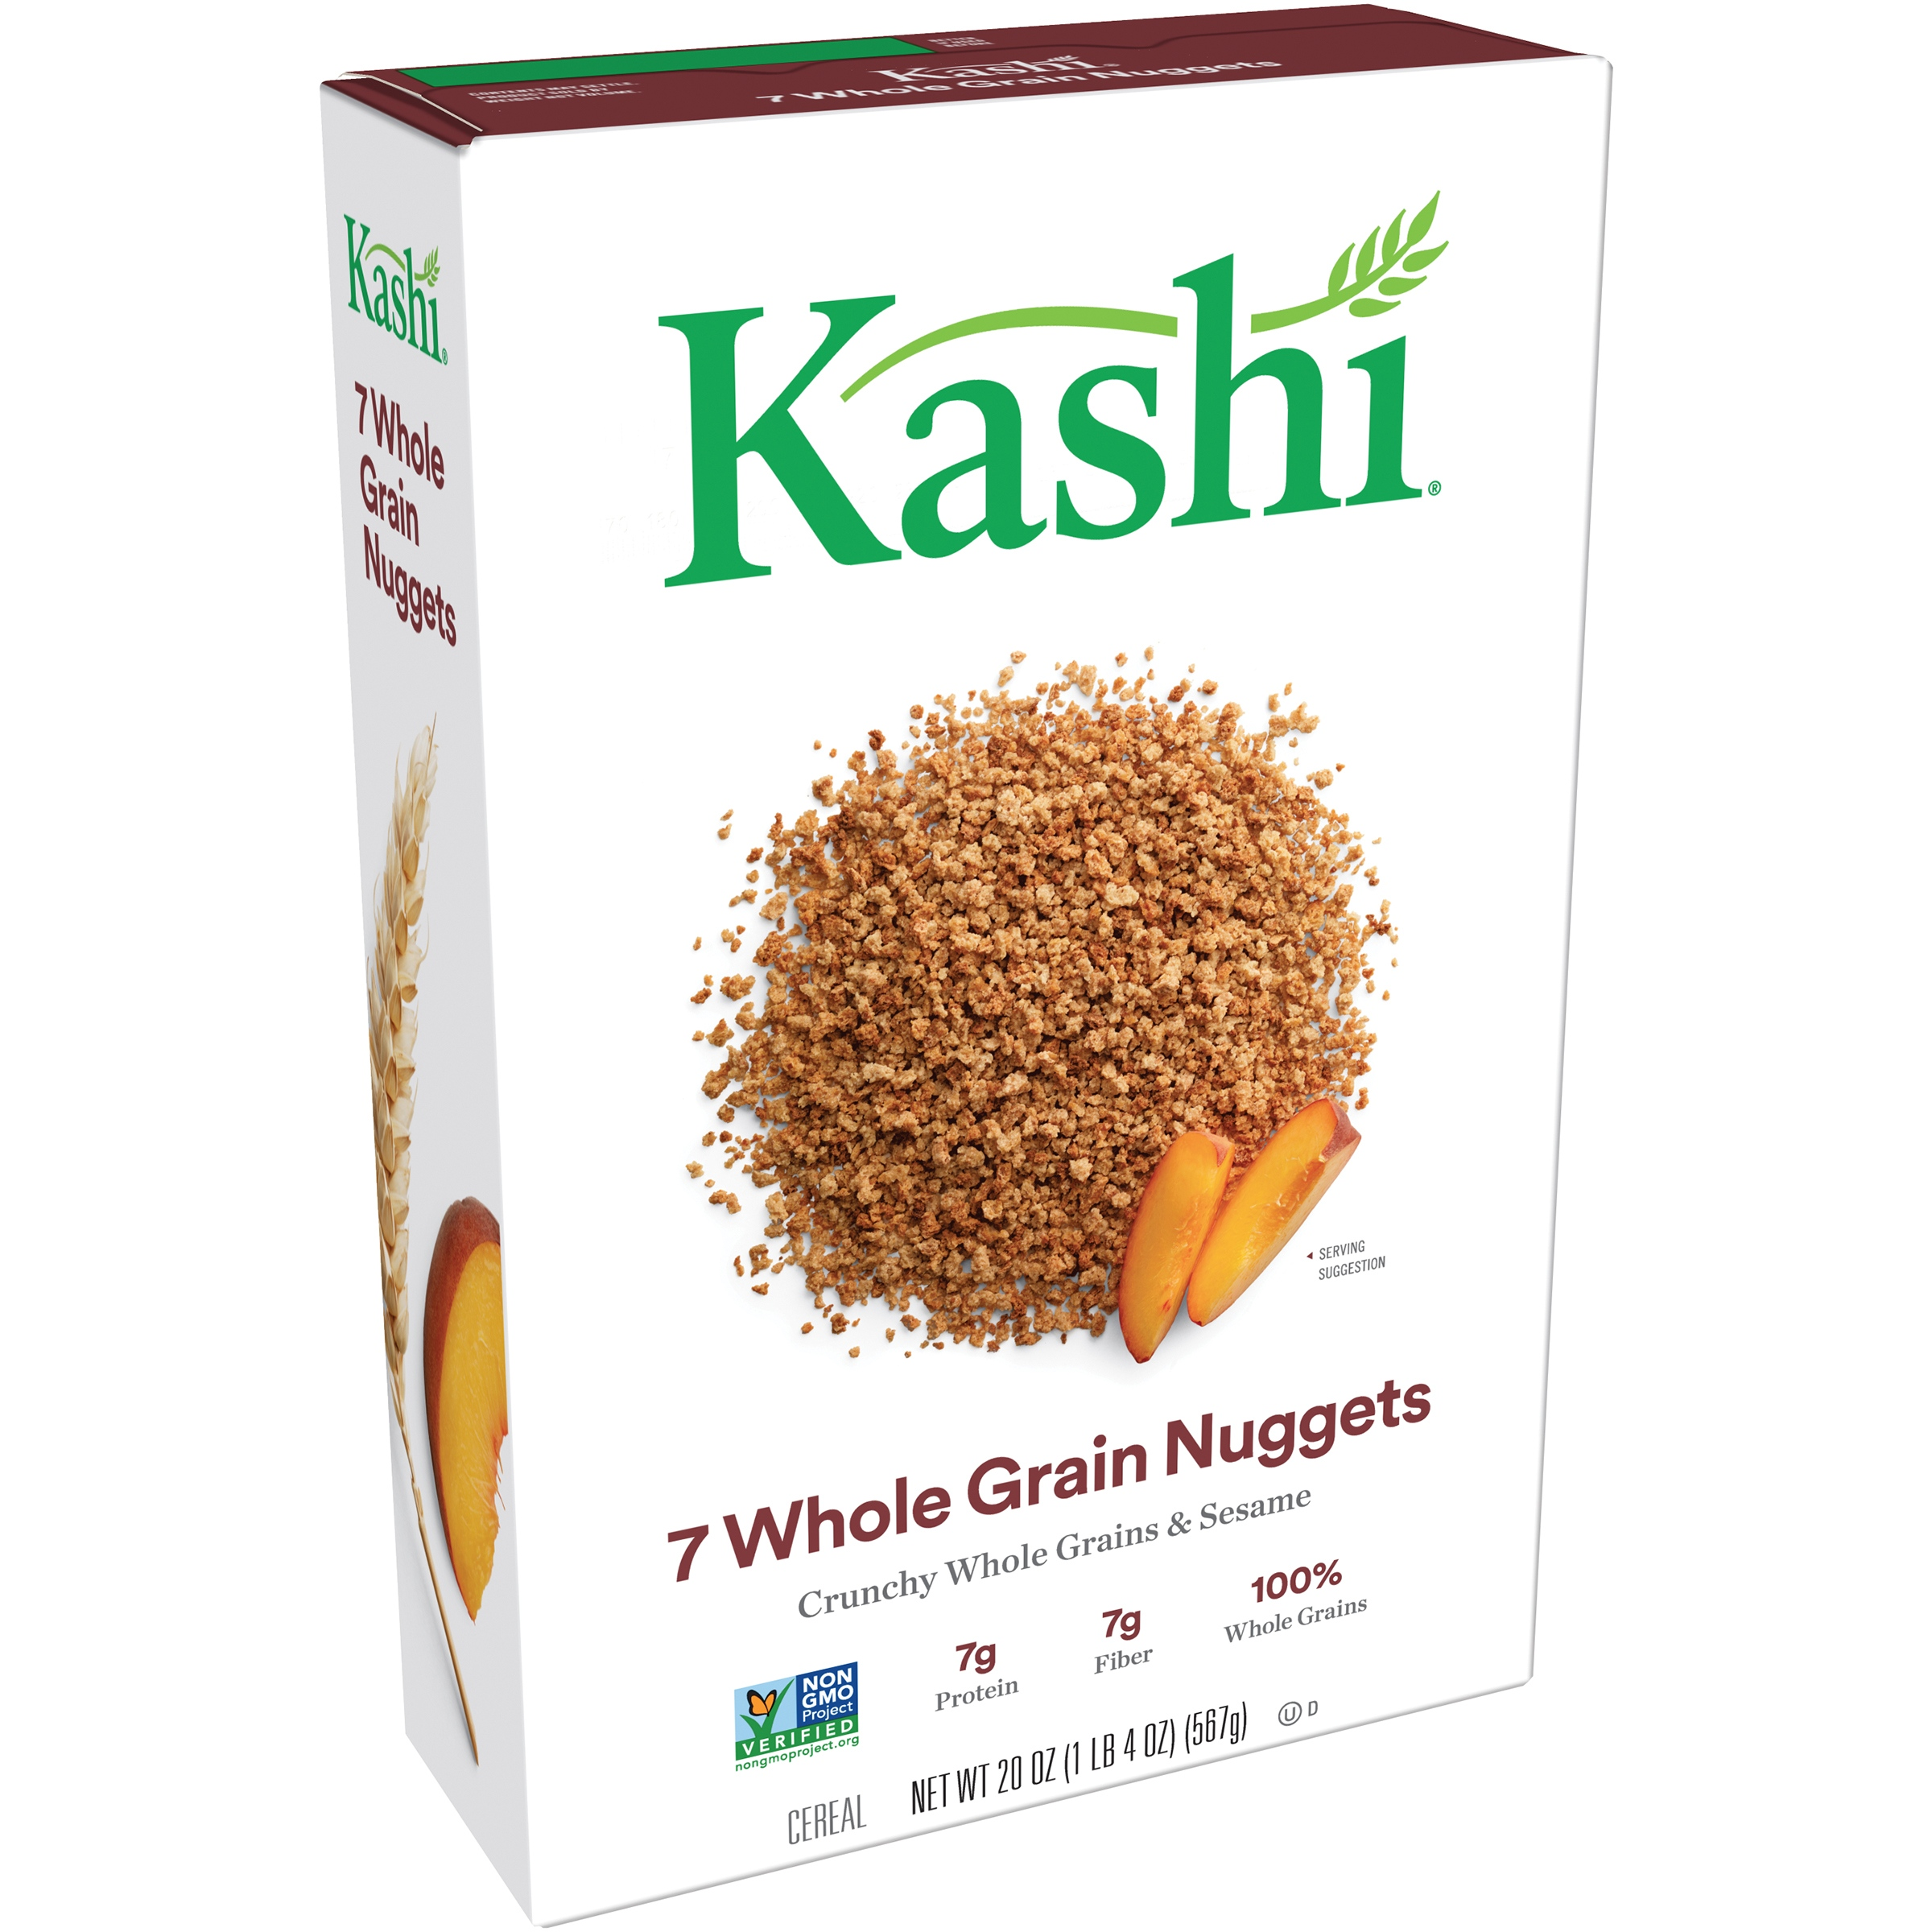 Kashi® 7 Whole Grain Nuggets Cereal 20 oz. Box